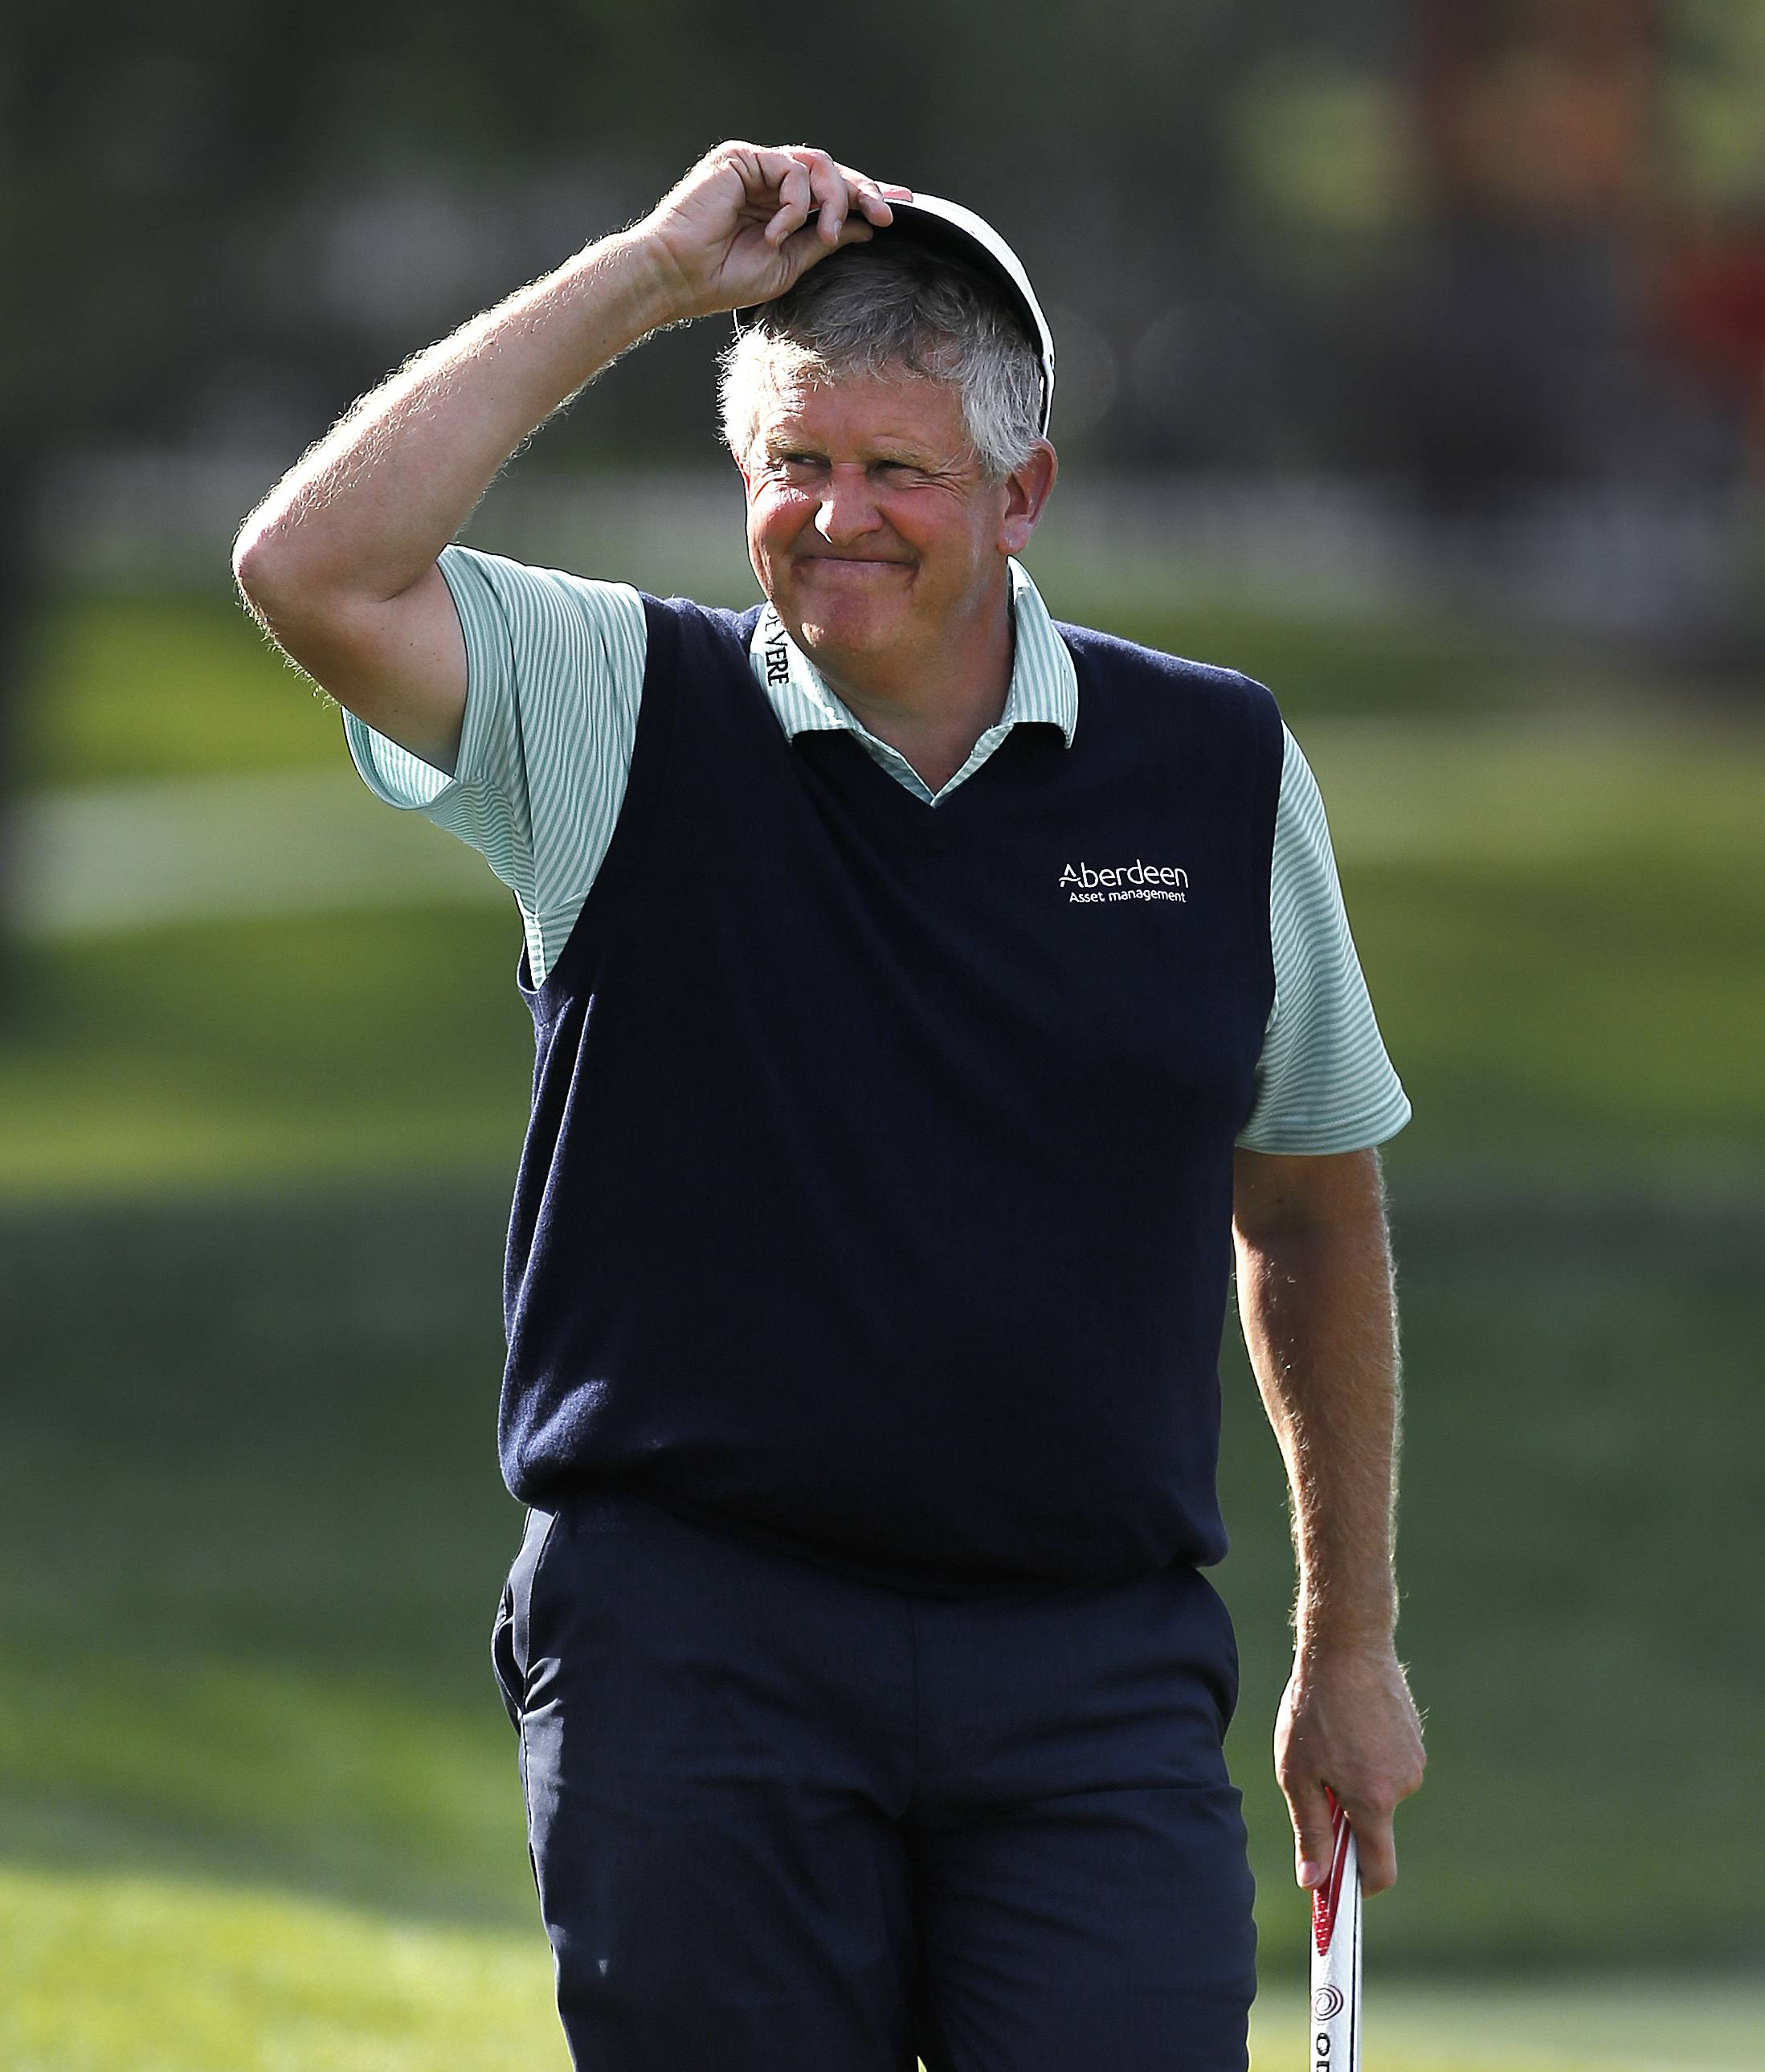 Scotland's Colin Montgomerie, who is a member of the World Golf Hall of Fame, has never won a tournament in the United States. But he holds a 1-shot lead over Bernhard Langer heading into today's final round of the Champions Tour's PGA Championship at Harbor Shores, Mich.